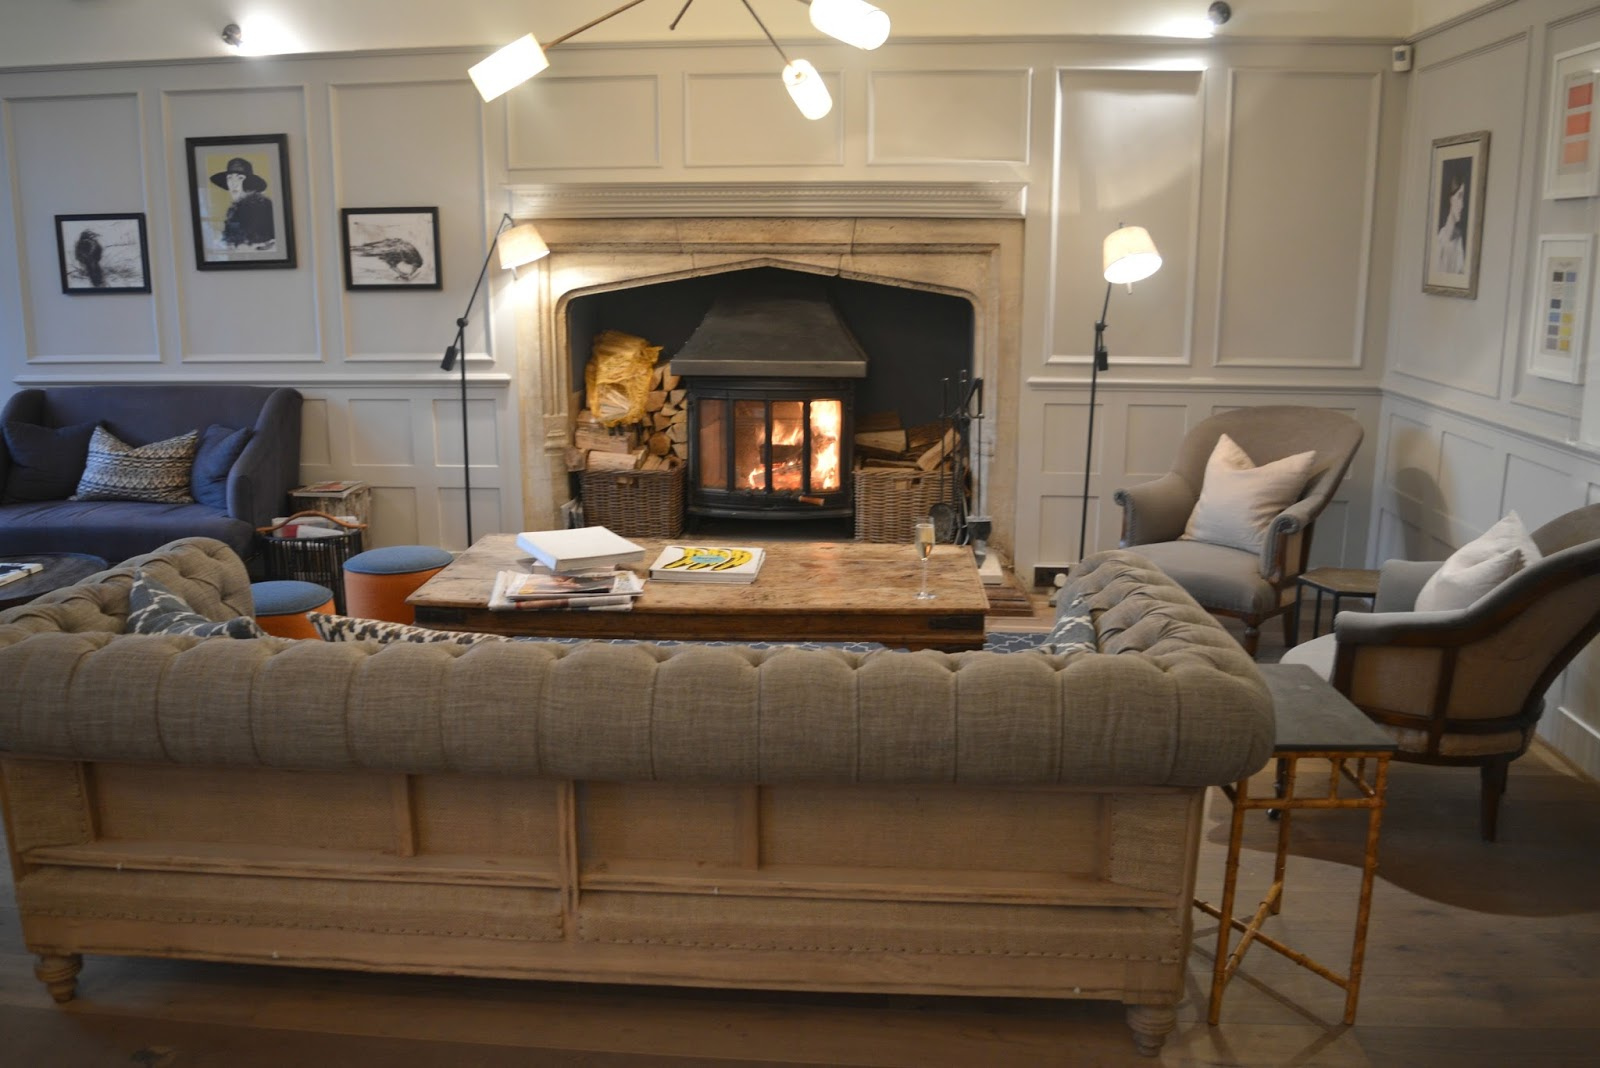 Cosy Hotel in the Cotswolds - The Painswick Fireside